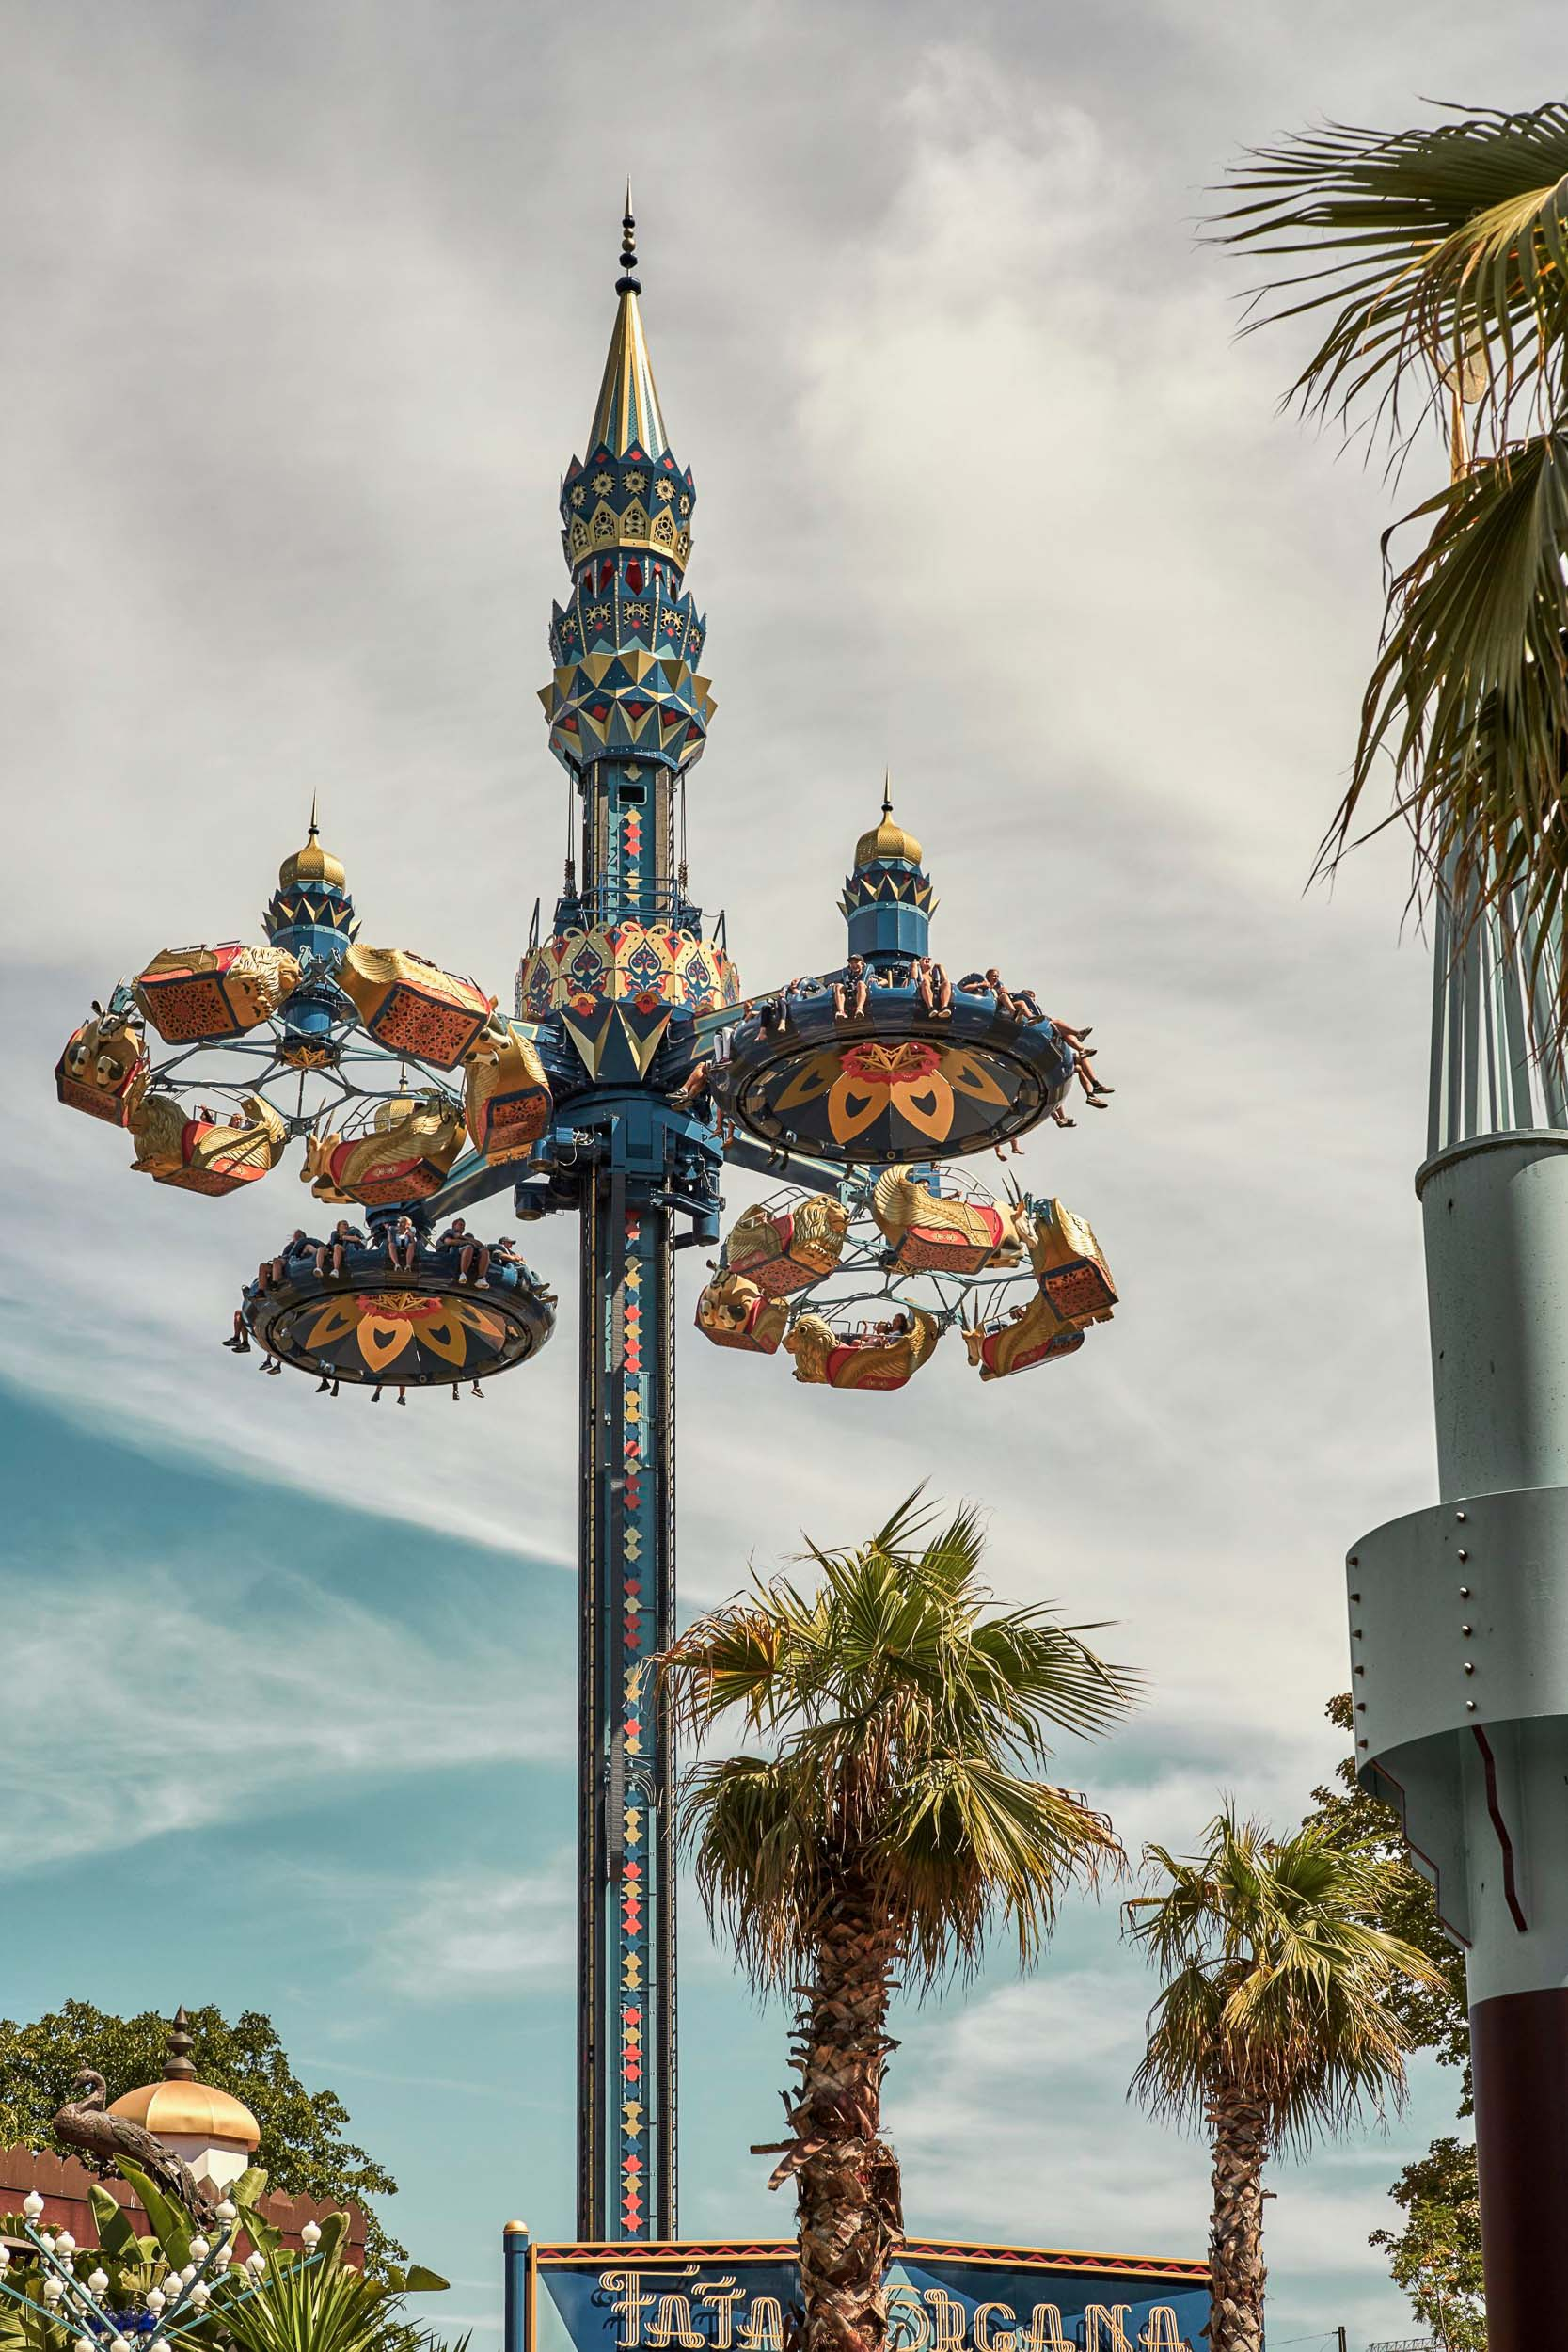 Do you have 3 days in Copenhagen? Spend a night at Tivoli, anamusement park right in the center of the city!